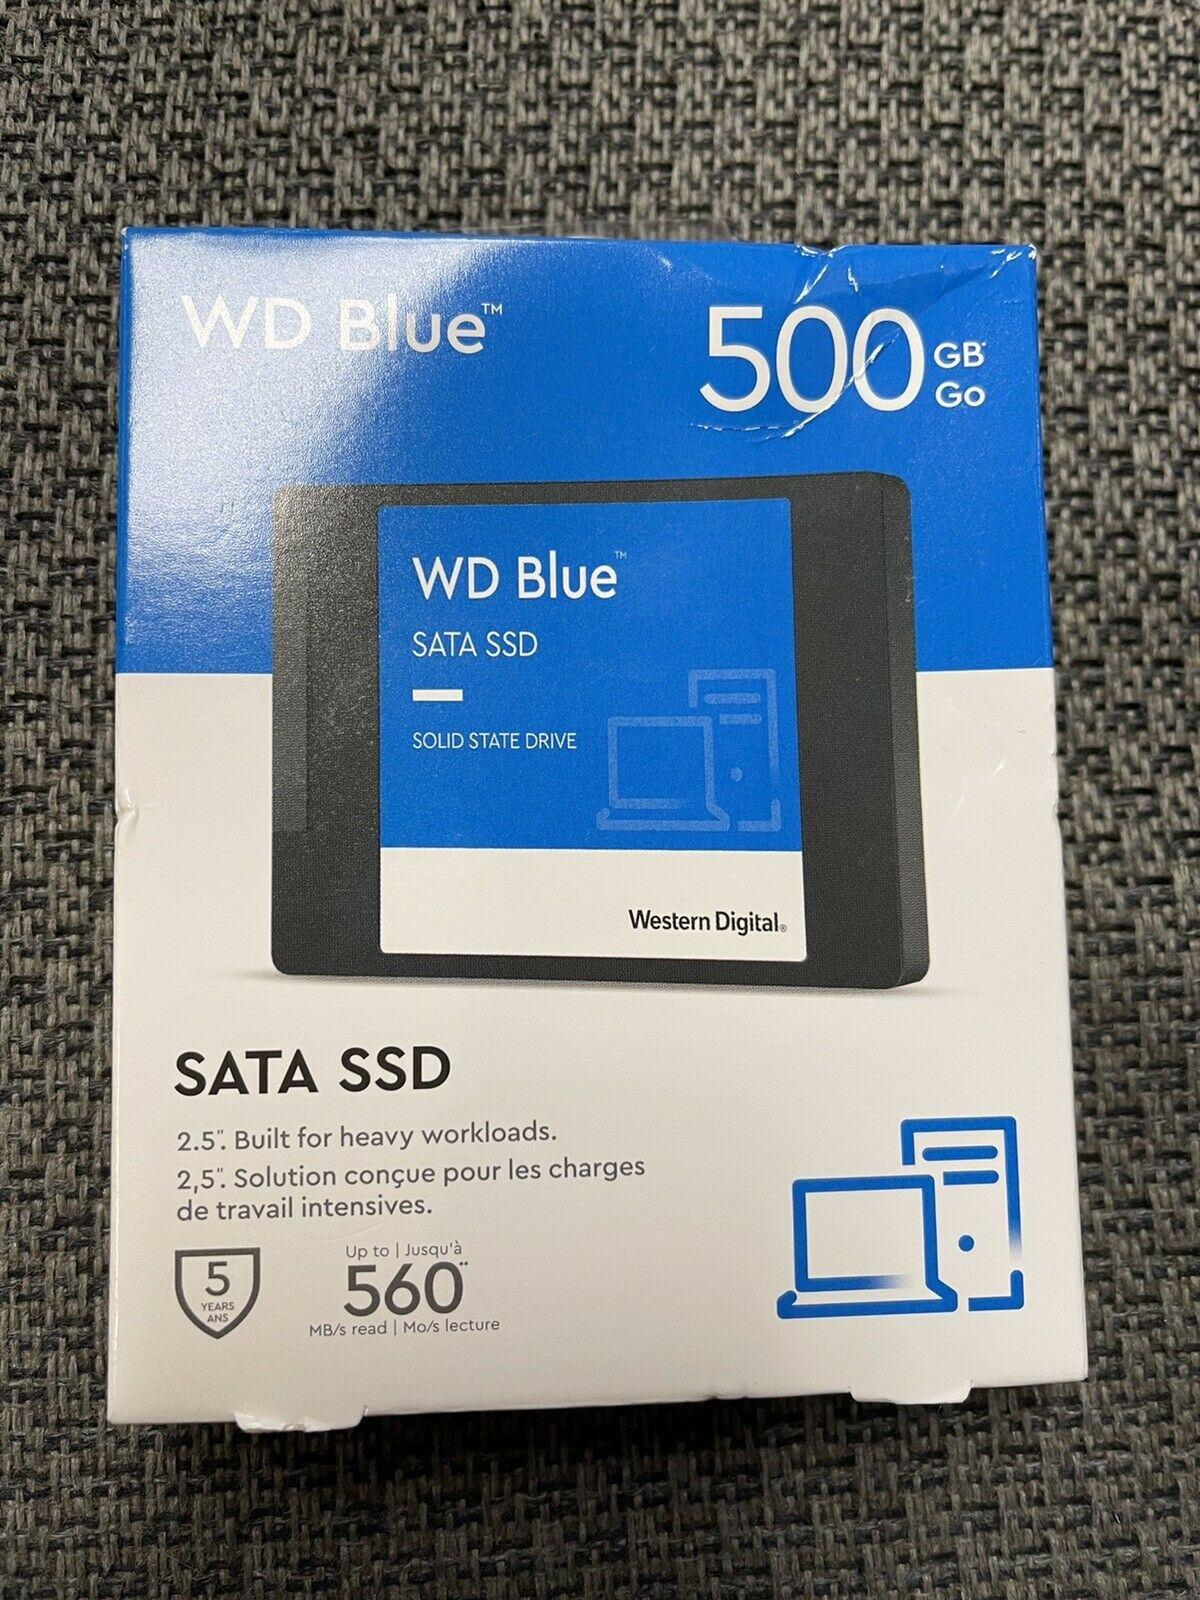 Brand New WD Blue 500GB Internal SATA SSD - Solid State Drive - WDBNCE5000PNC. Buy it now for 54.99